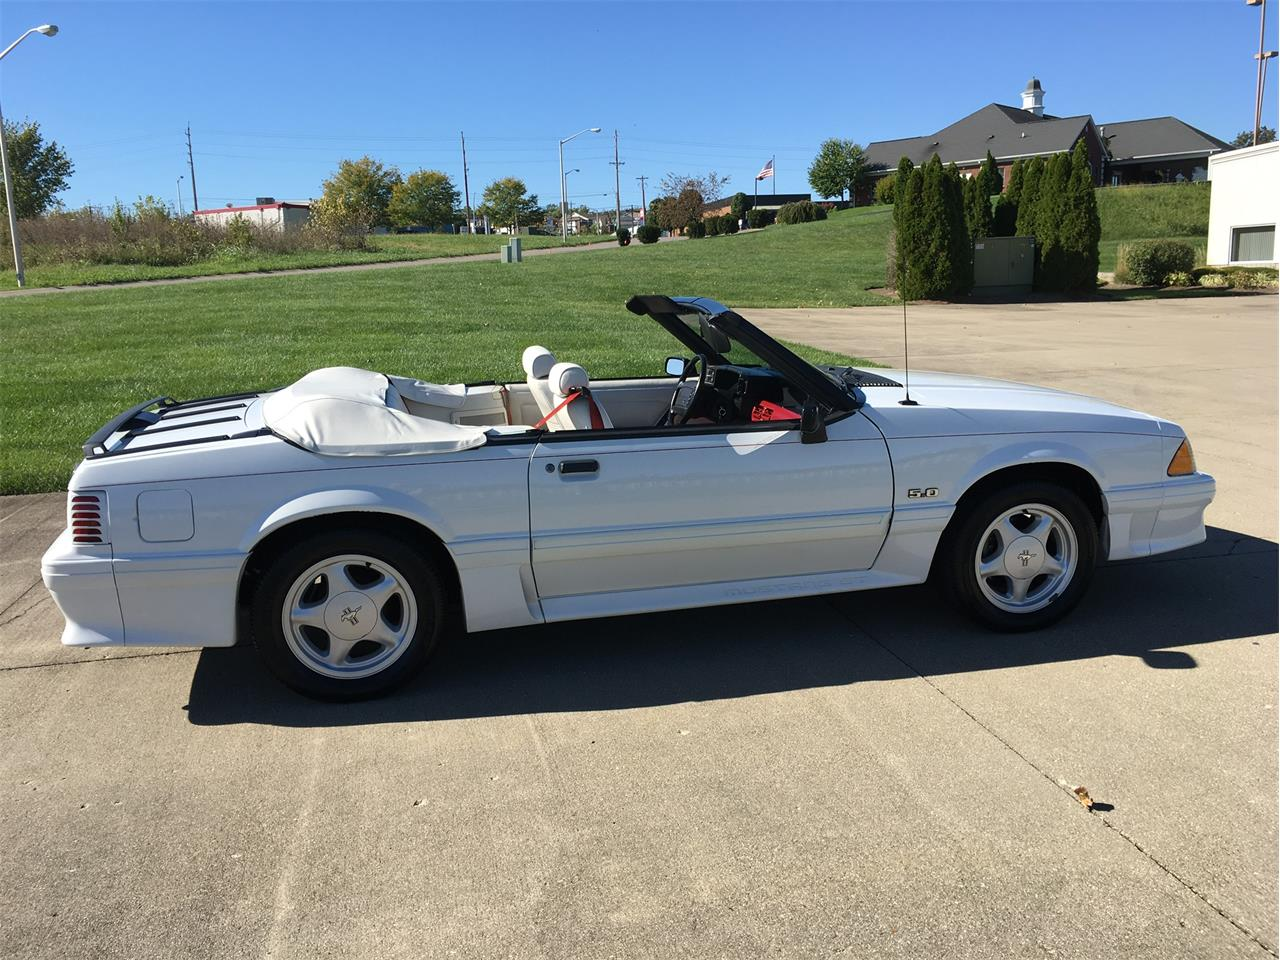 91 Mustang Gt >> For Sale 1991 Ford Mustang Gt In Fairfield Ohio